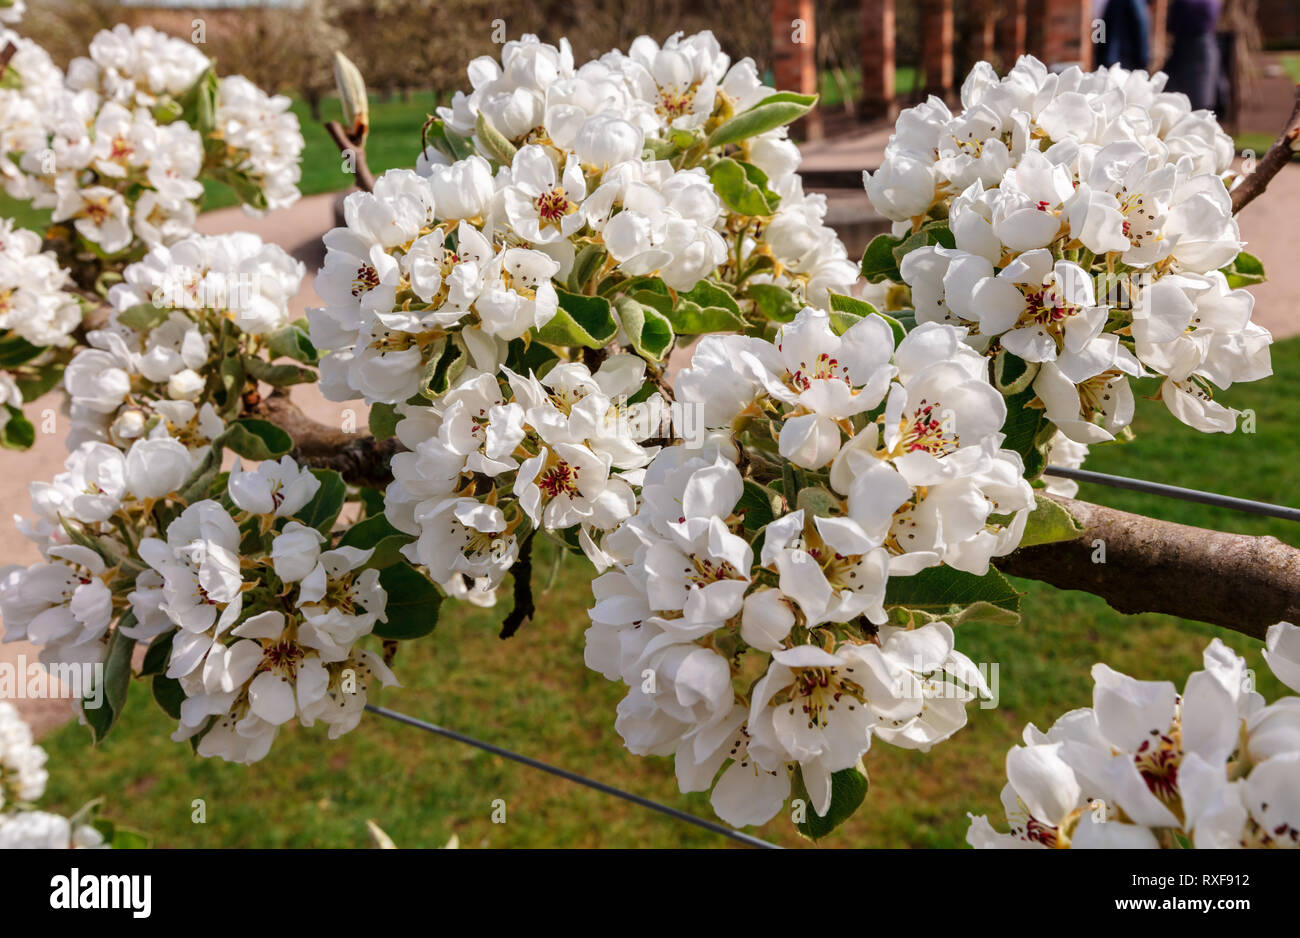 Espaliered blossoming branches of fruit trees in a garden in the springtime. - Stock Image